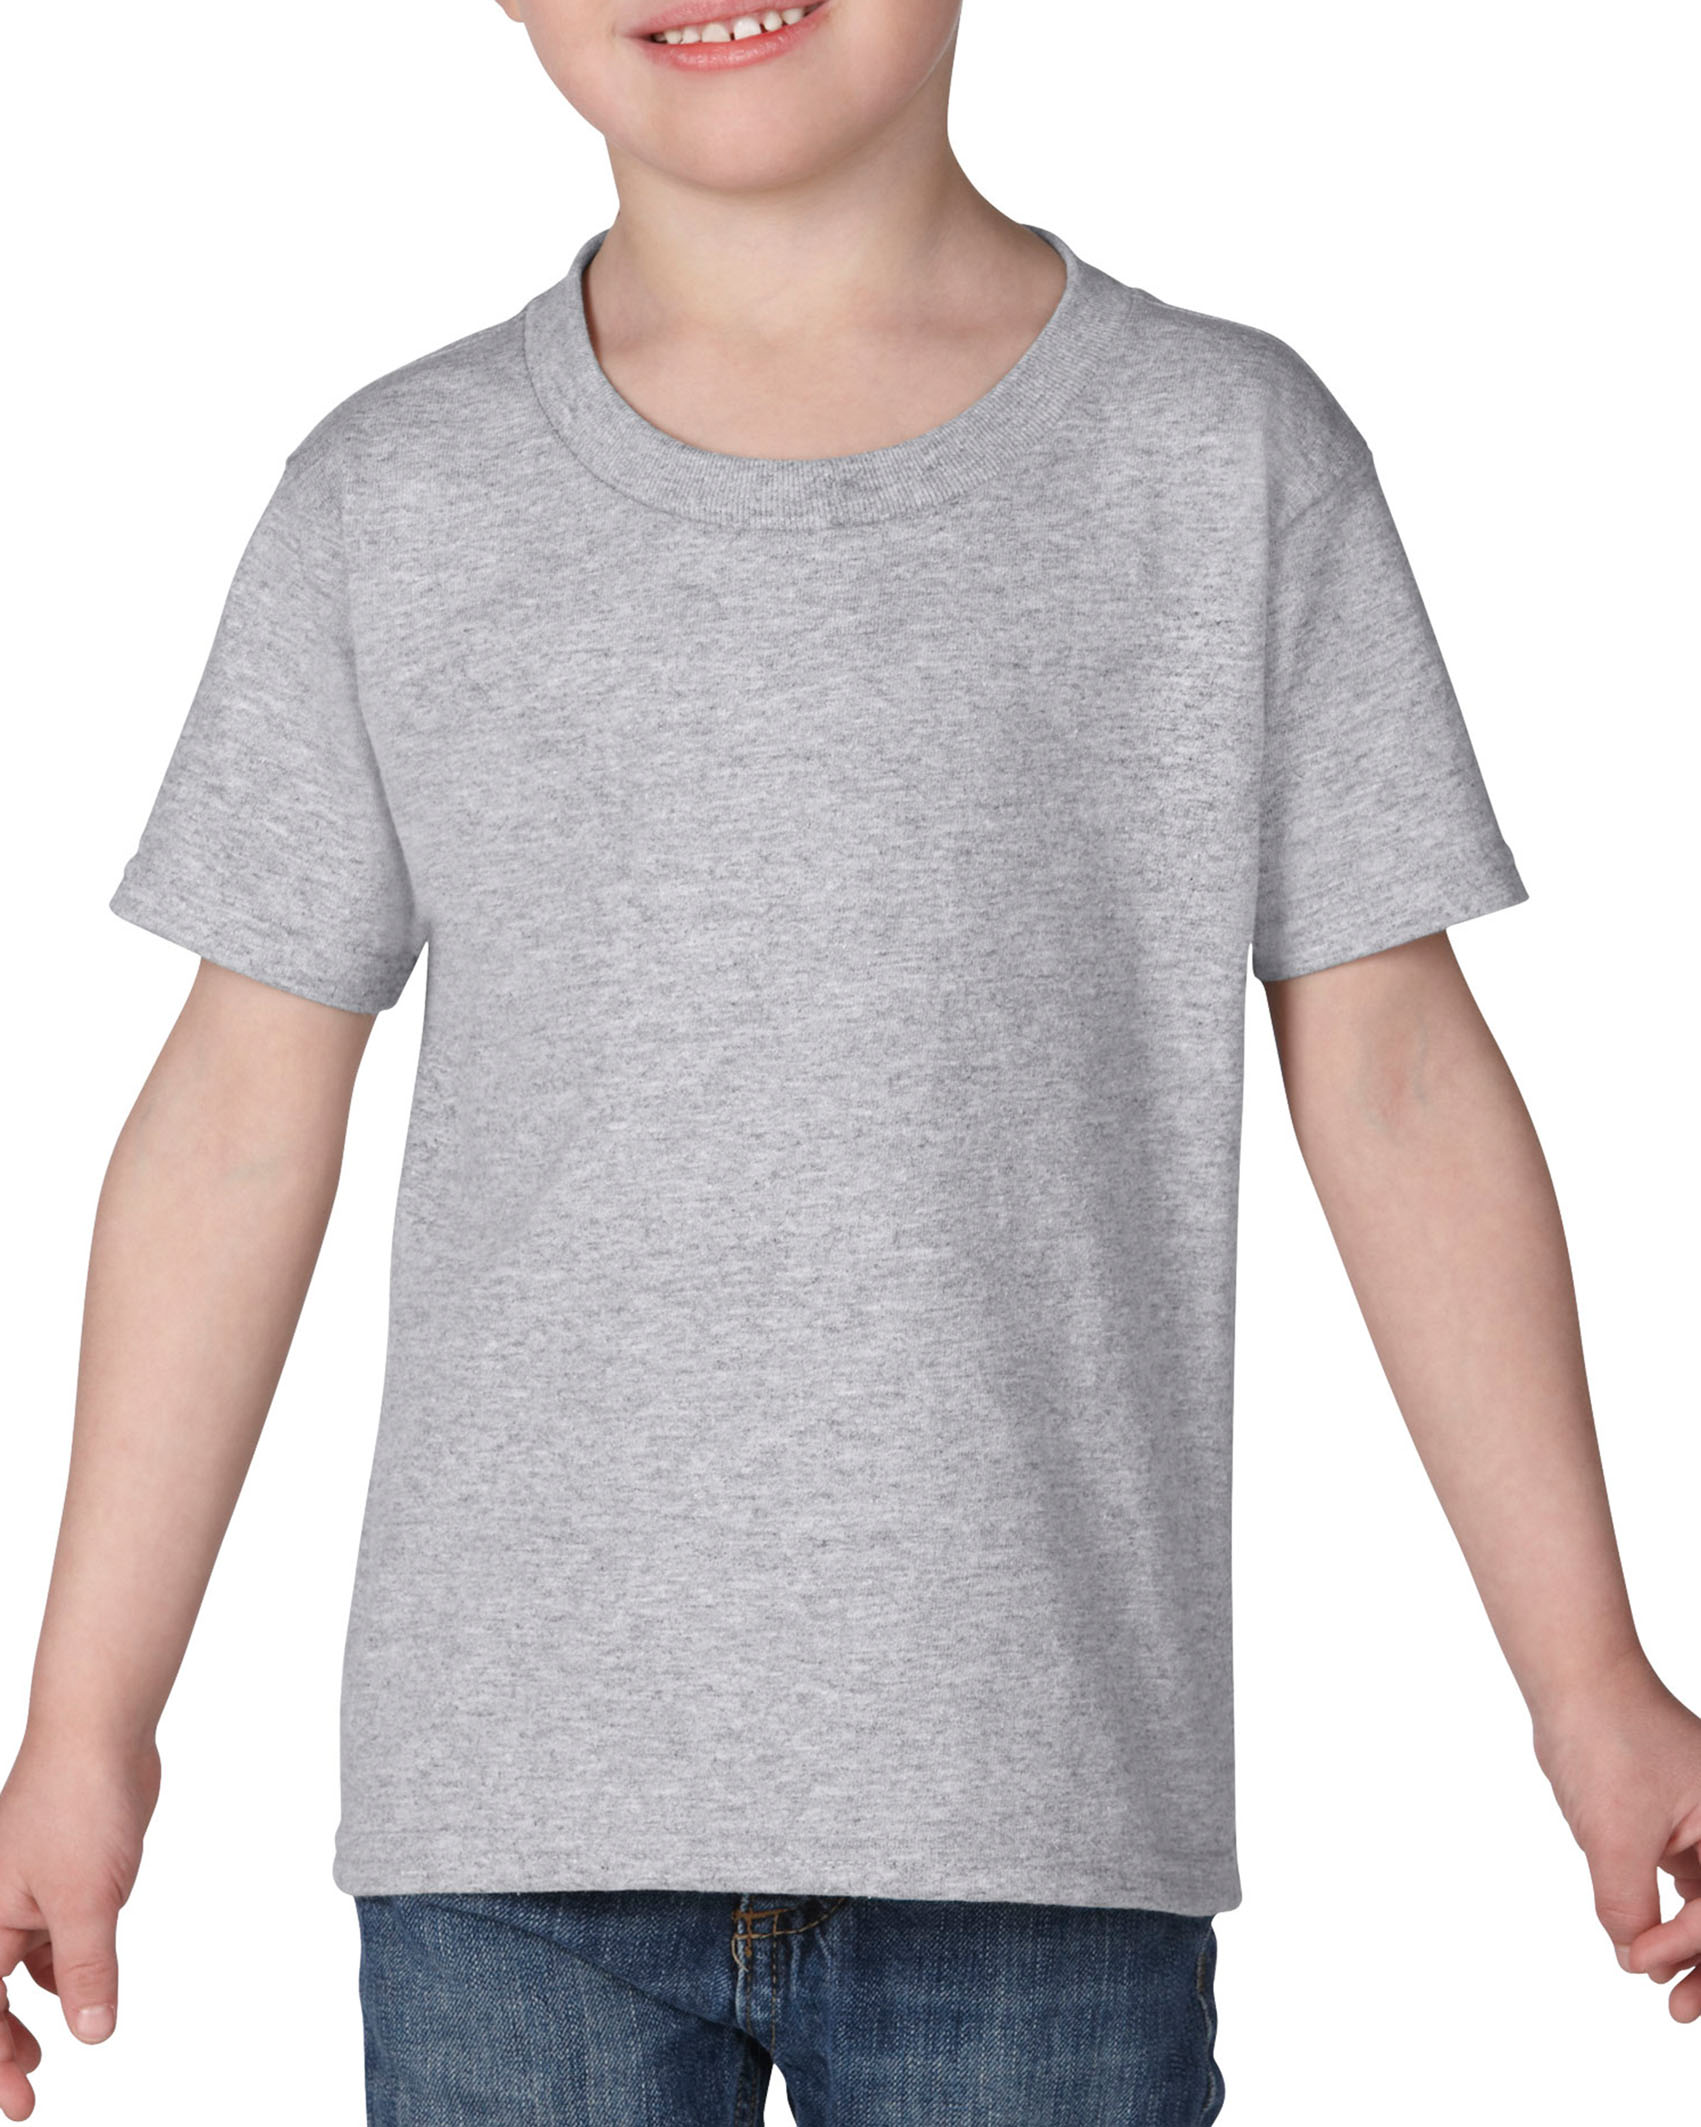 Gildan T-shirt Heavy Cotton SS for Toddler